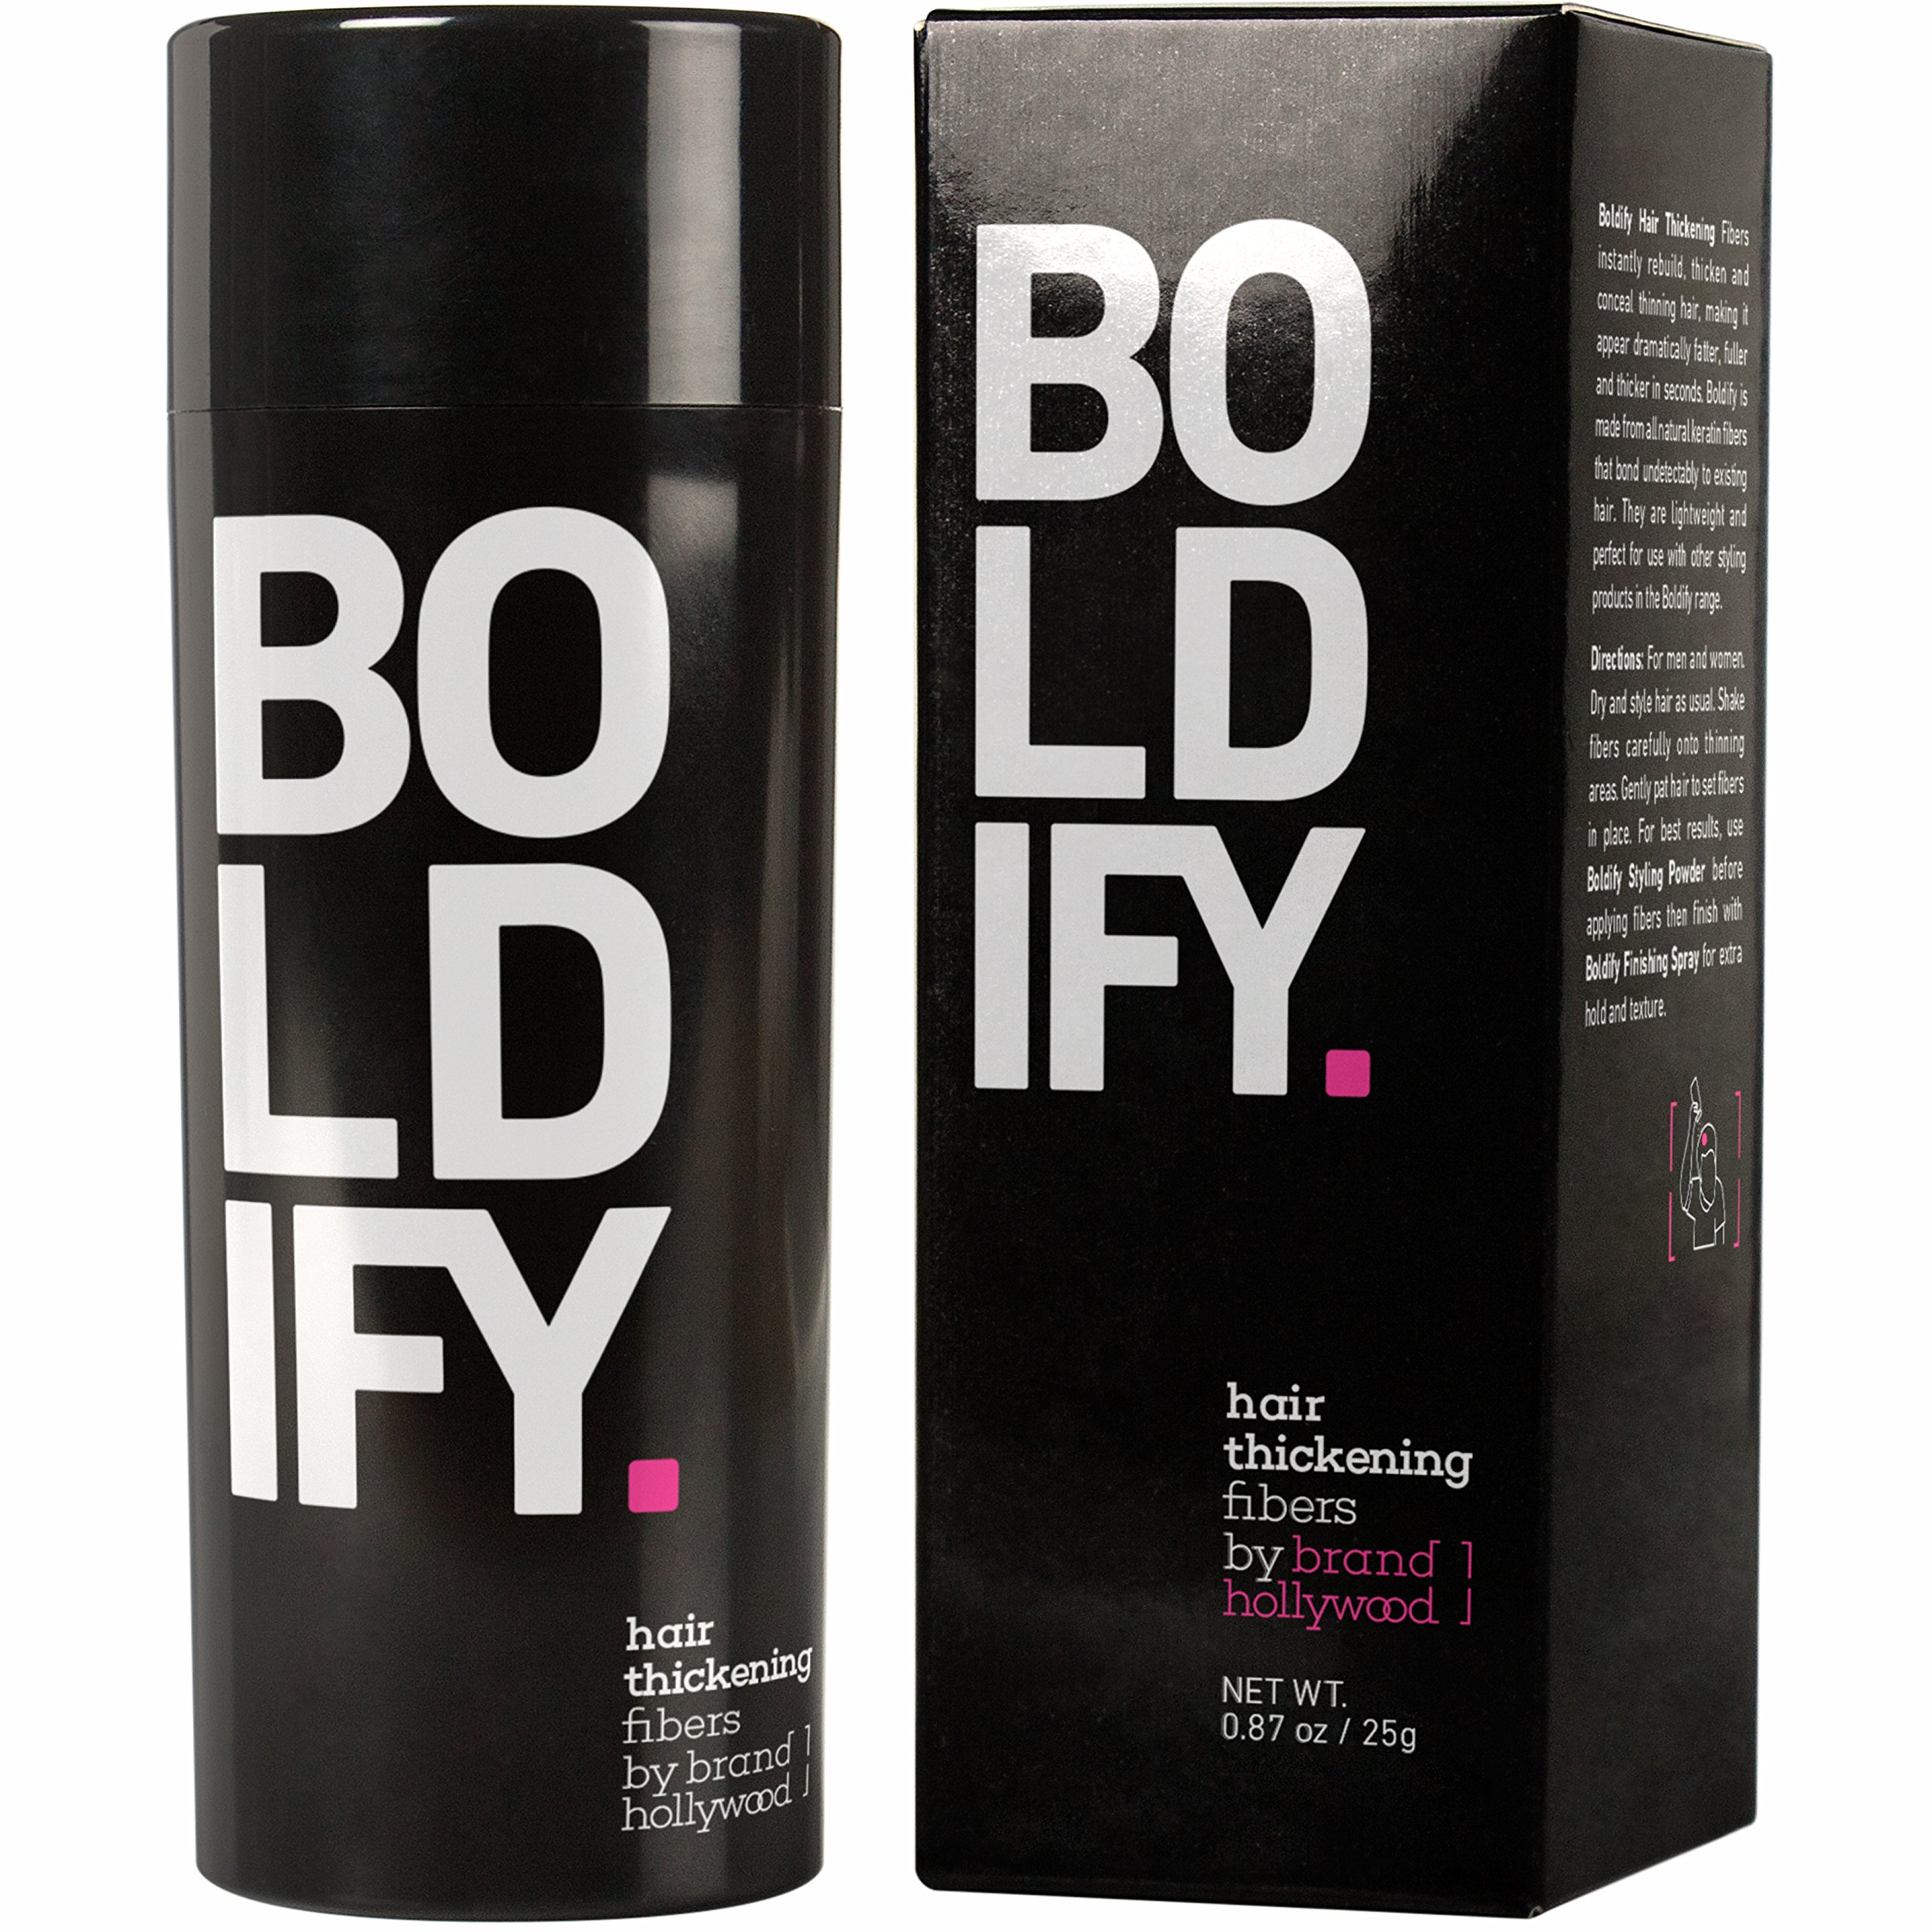 BOLDIFY Hair Fibers for Thinning Hair - 100% Undetectable Keratin Fibers - Giant 25g Bottle - Completely Conceals Hair Loss in 15 Seconds (DARK BROWN)